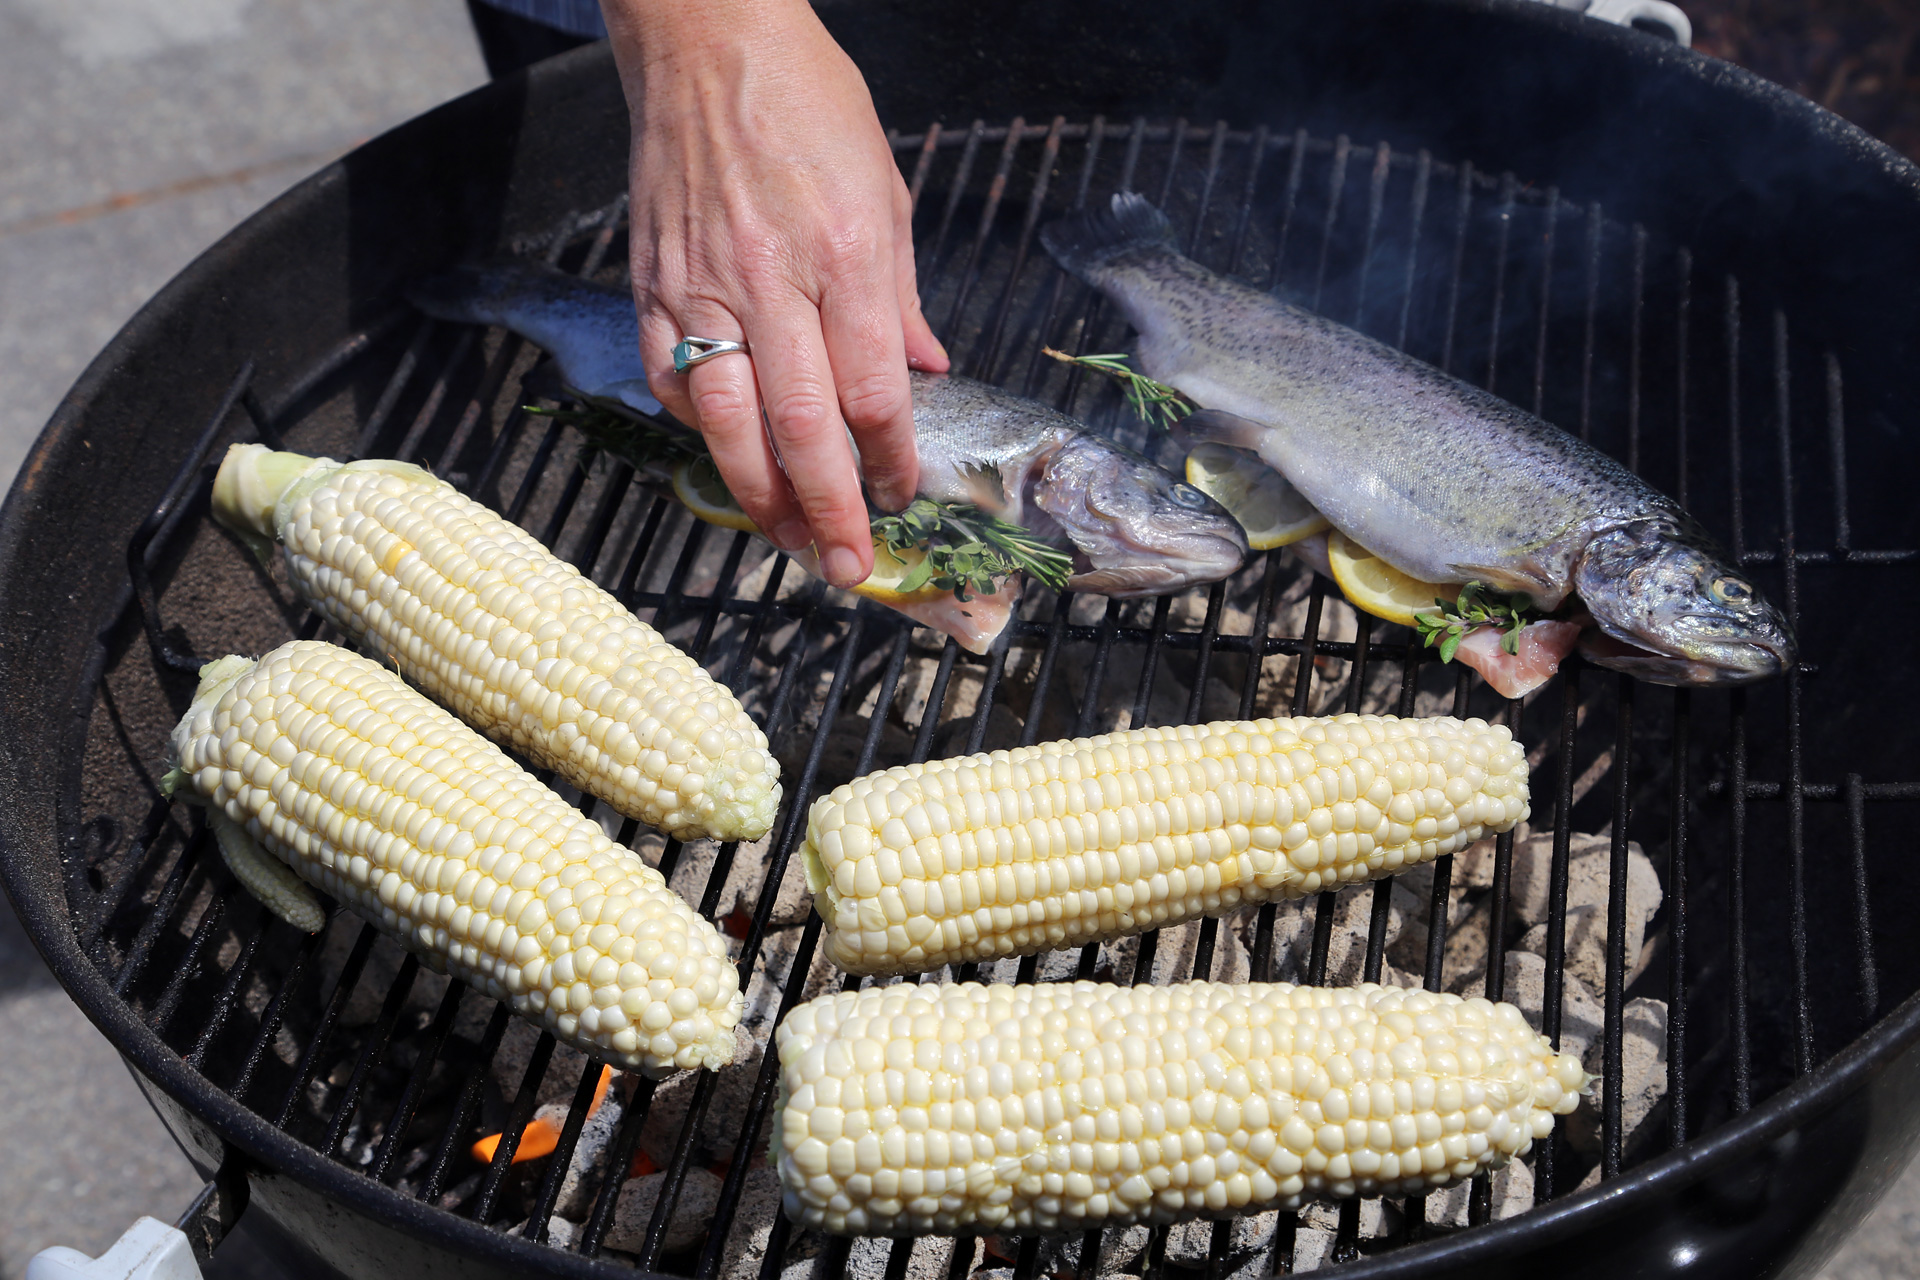 Add the trout to the grill directly over the fire.